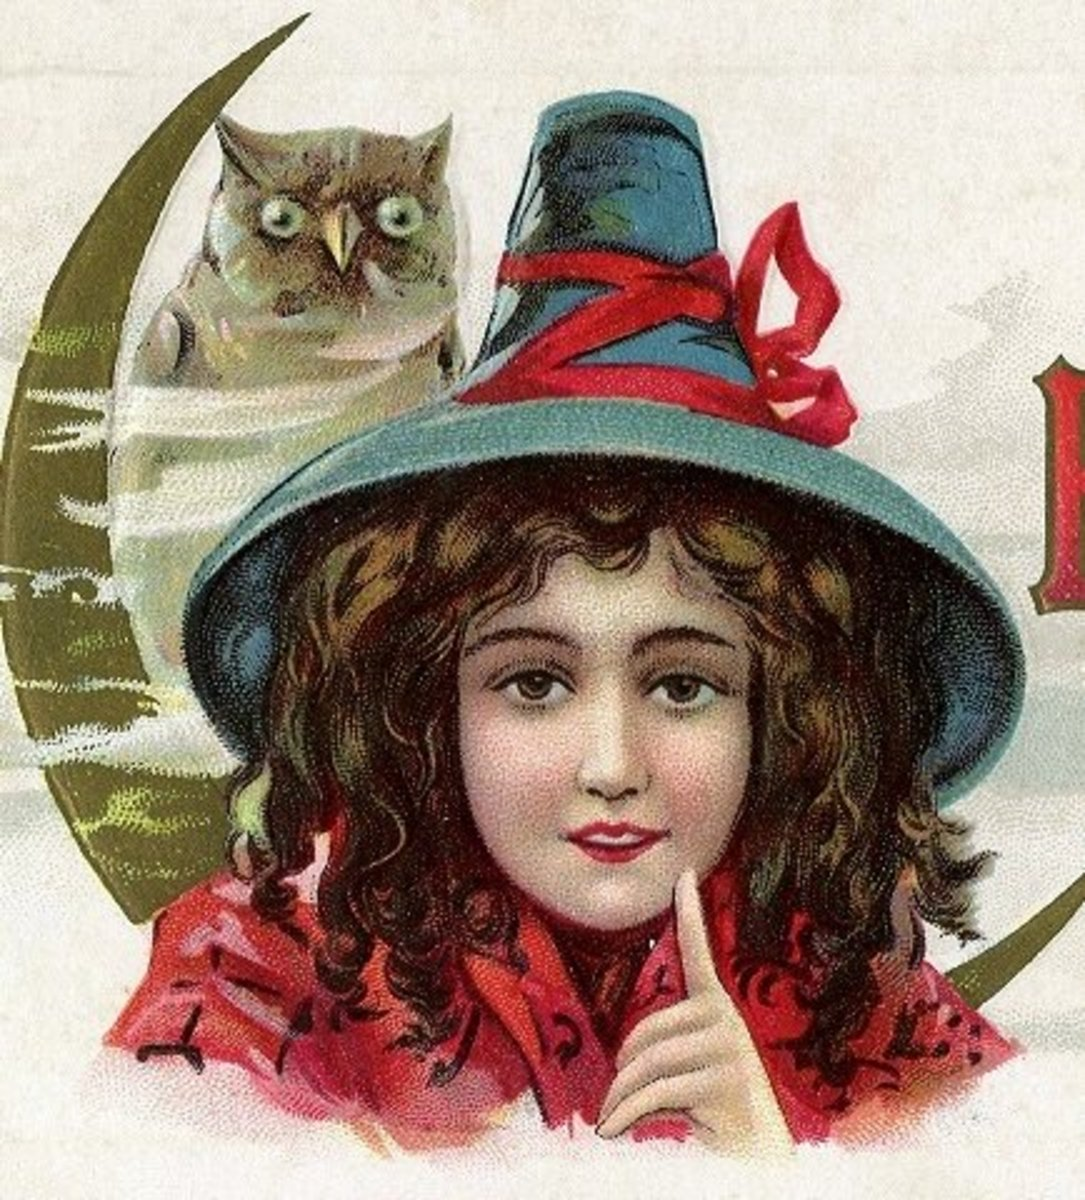 A witch with an owl familiar from a vintage Halloween postcard.